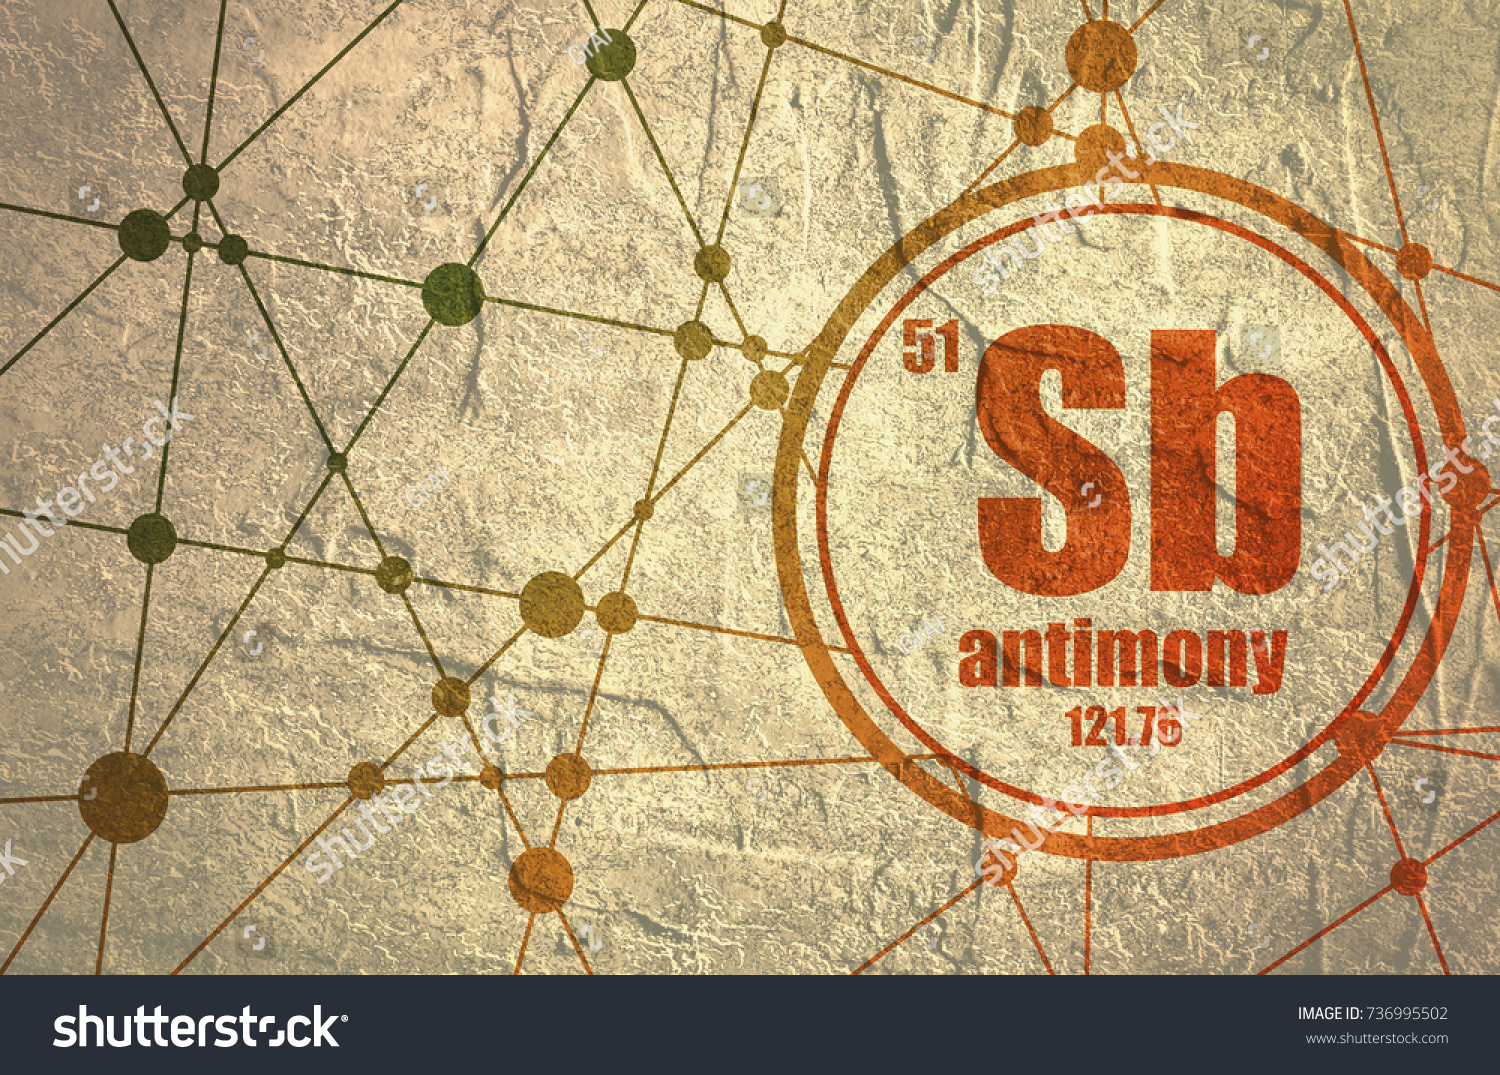 Antimony chemical element sign atomic number stock illustration sign with atomic number and atomic weight chemical element of periodic gamestrikefo Choice Image